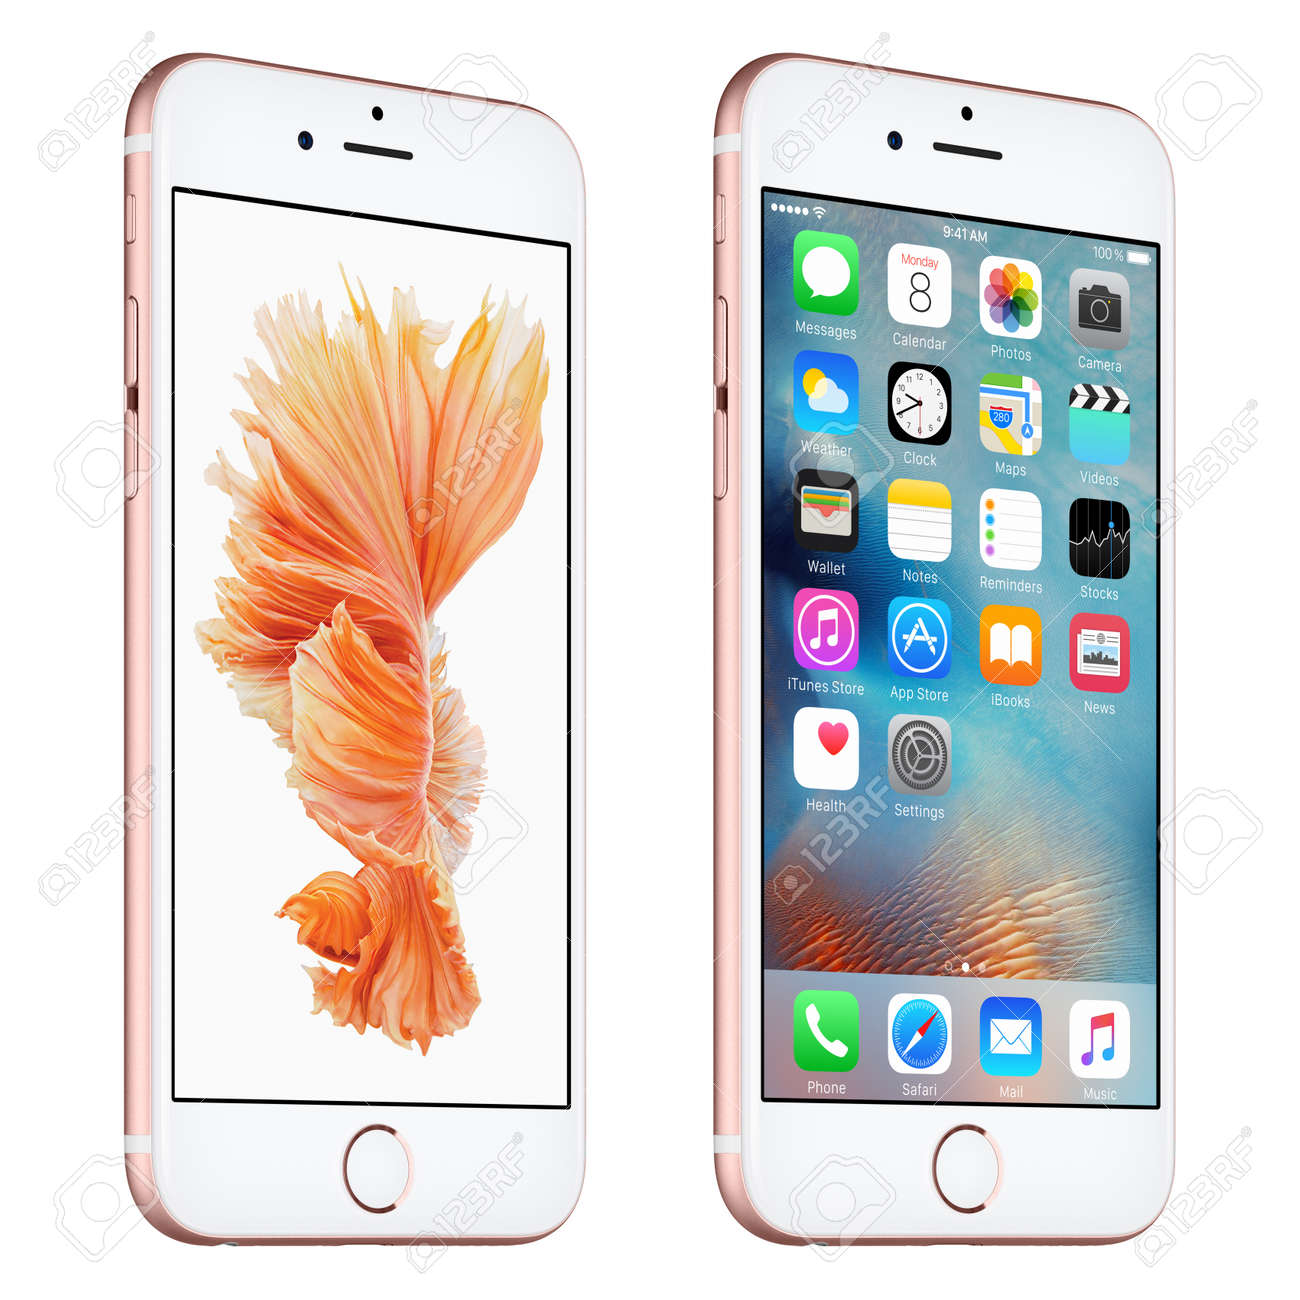 Varna, Bulgaria - October 24, 2015: Rose Gold Apple iPhone 6S rotated at a slight angle bottom up view with iOS 9 mobile operating system and Siamese Fighting Fish Dynamic Wallpaper on the screen. Isolated on white. - 53943776